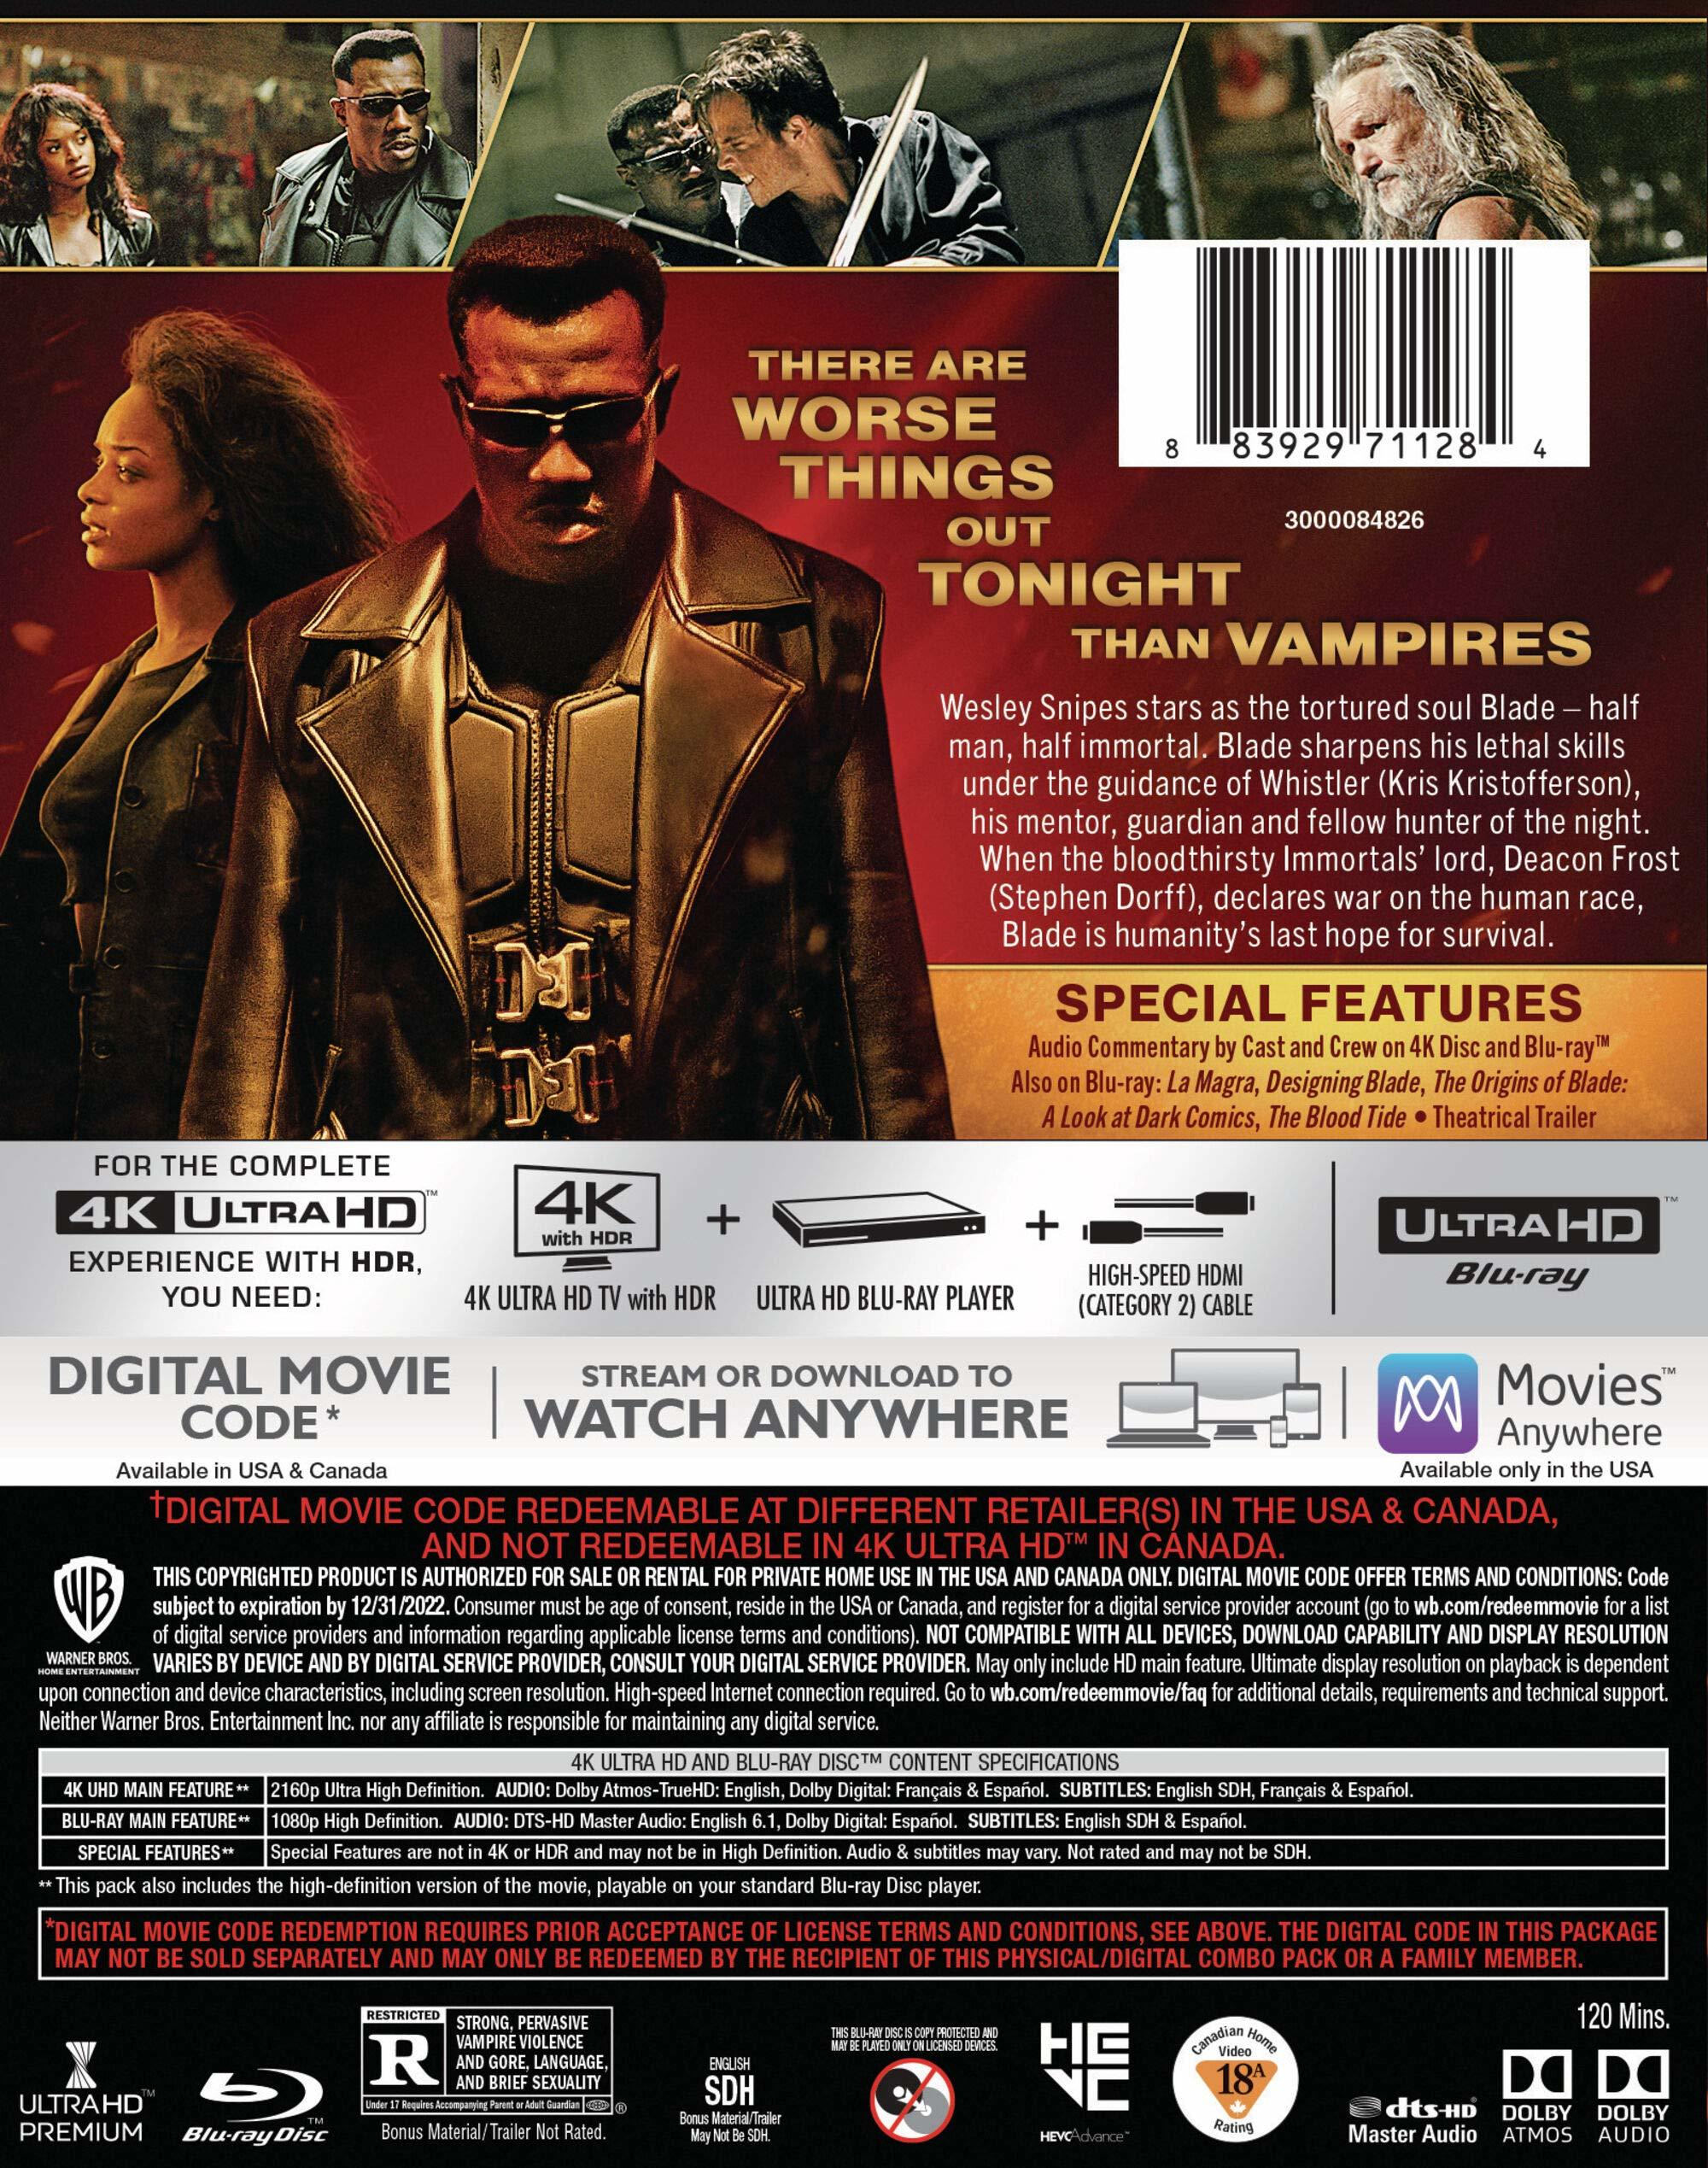 blade 4k uhd bluray back cover